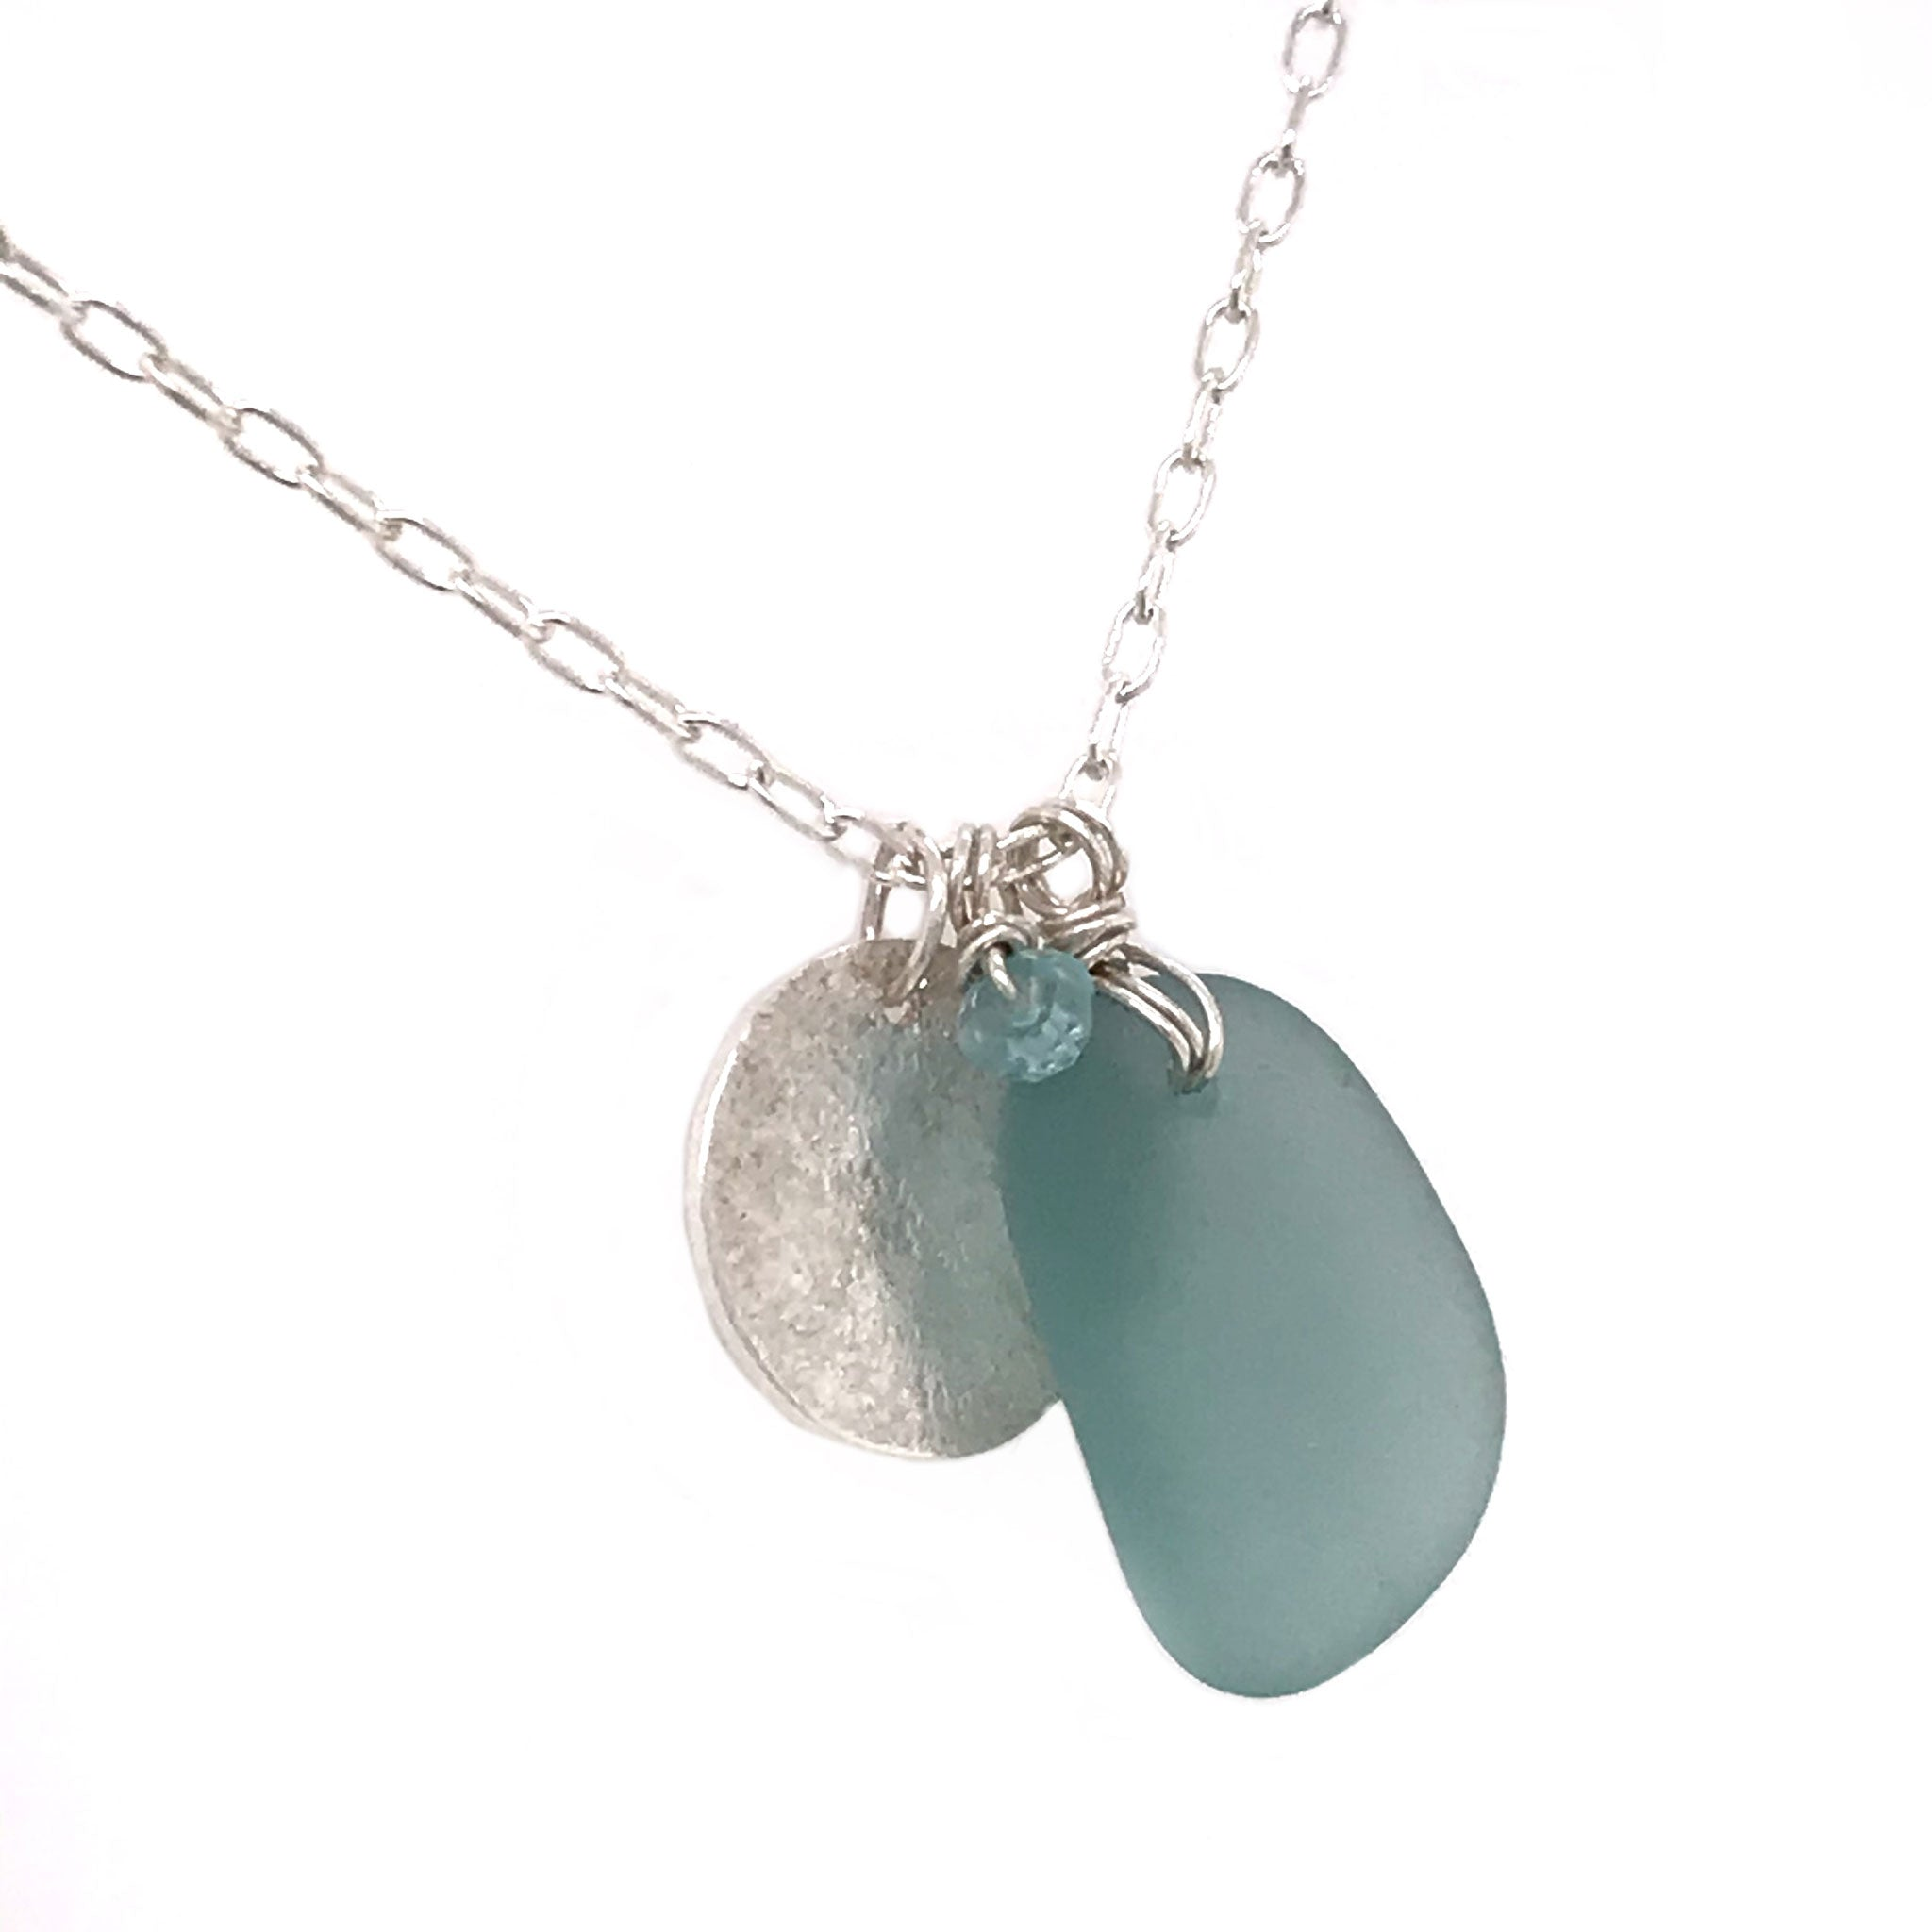 aqua blue seaglass necklace with sterling silver hammered disc charm kriket Broadhurst jewellery